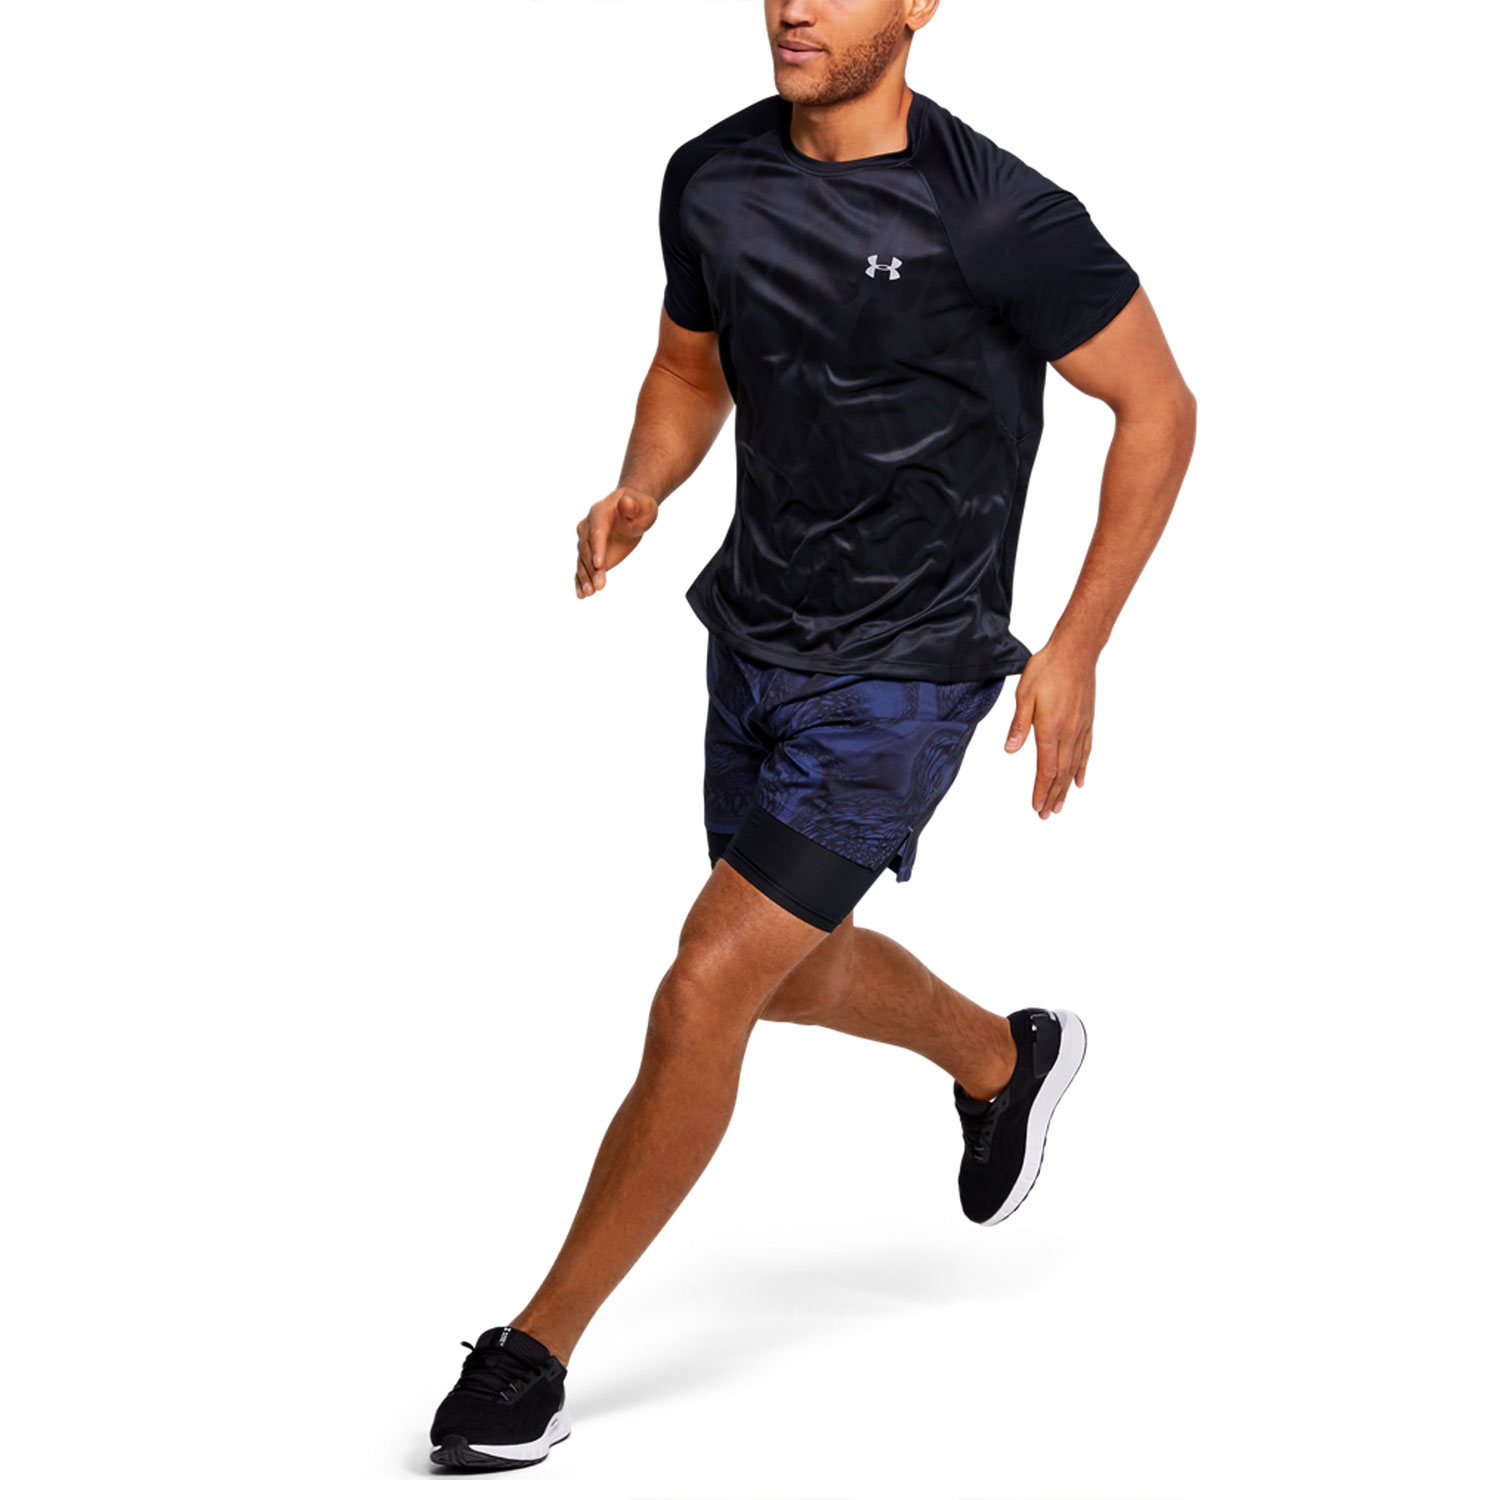 Under Armour Qualifier Iso-Chill Printed T-shirt - Black